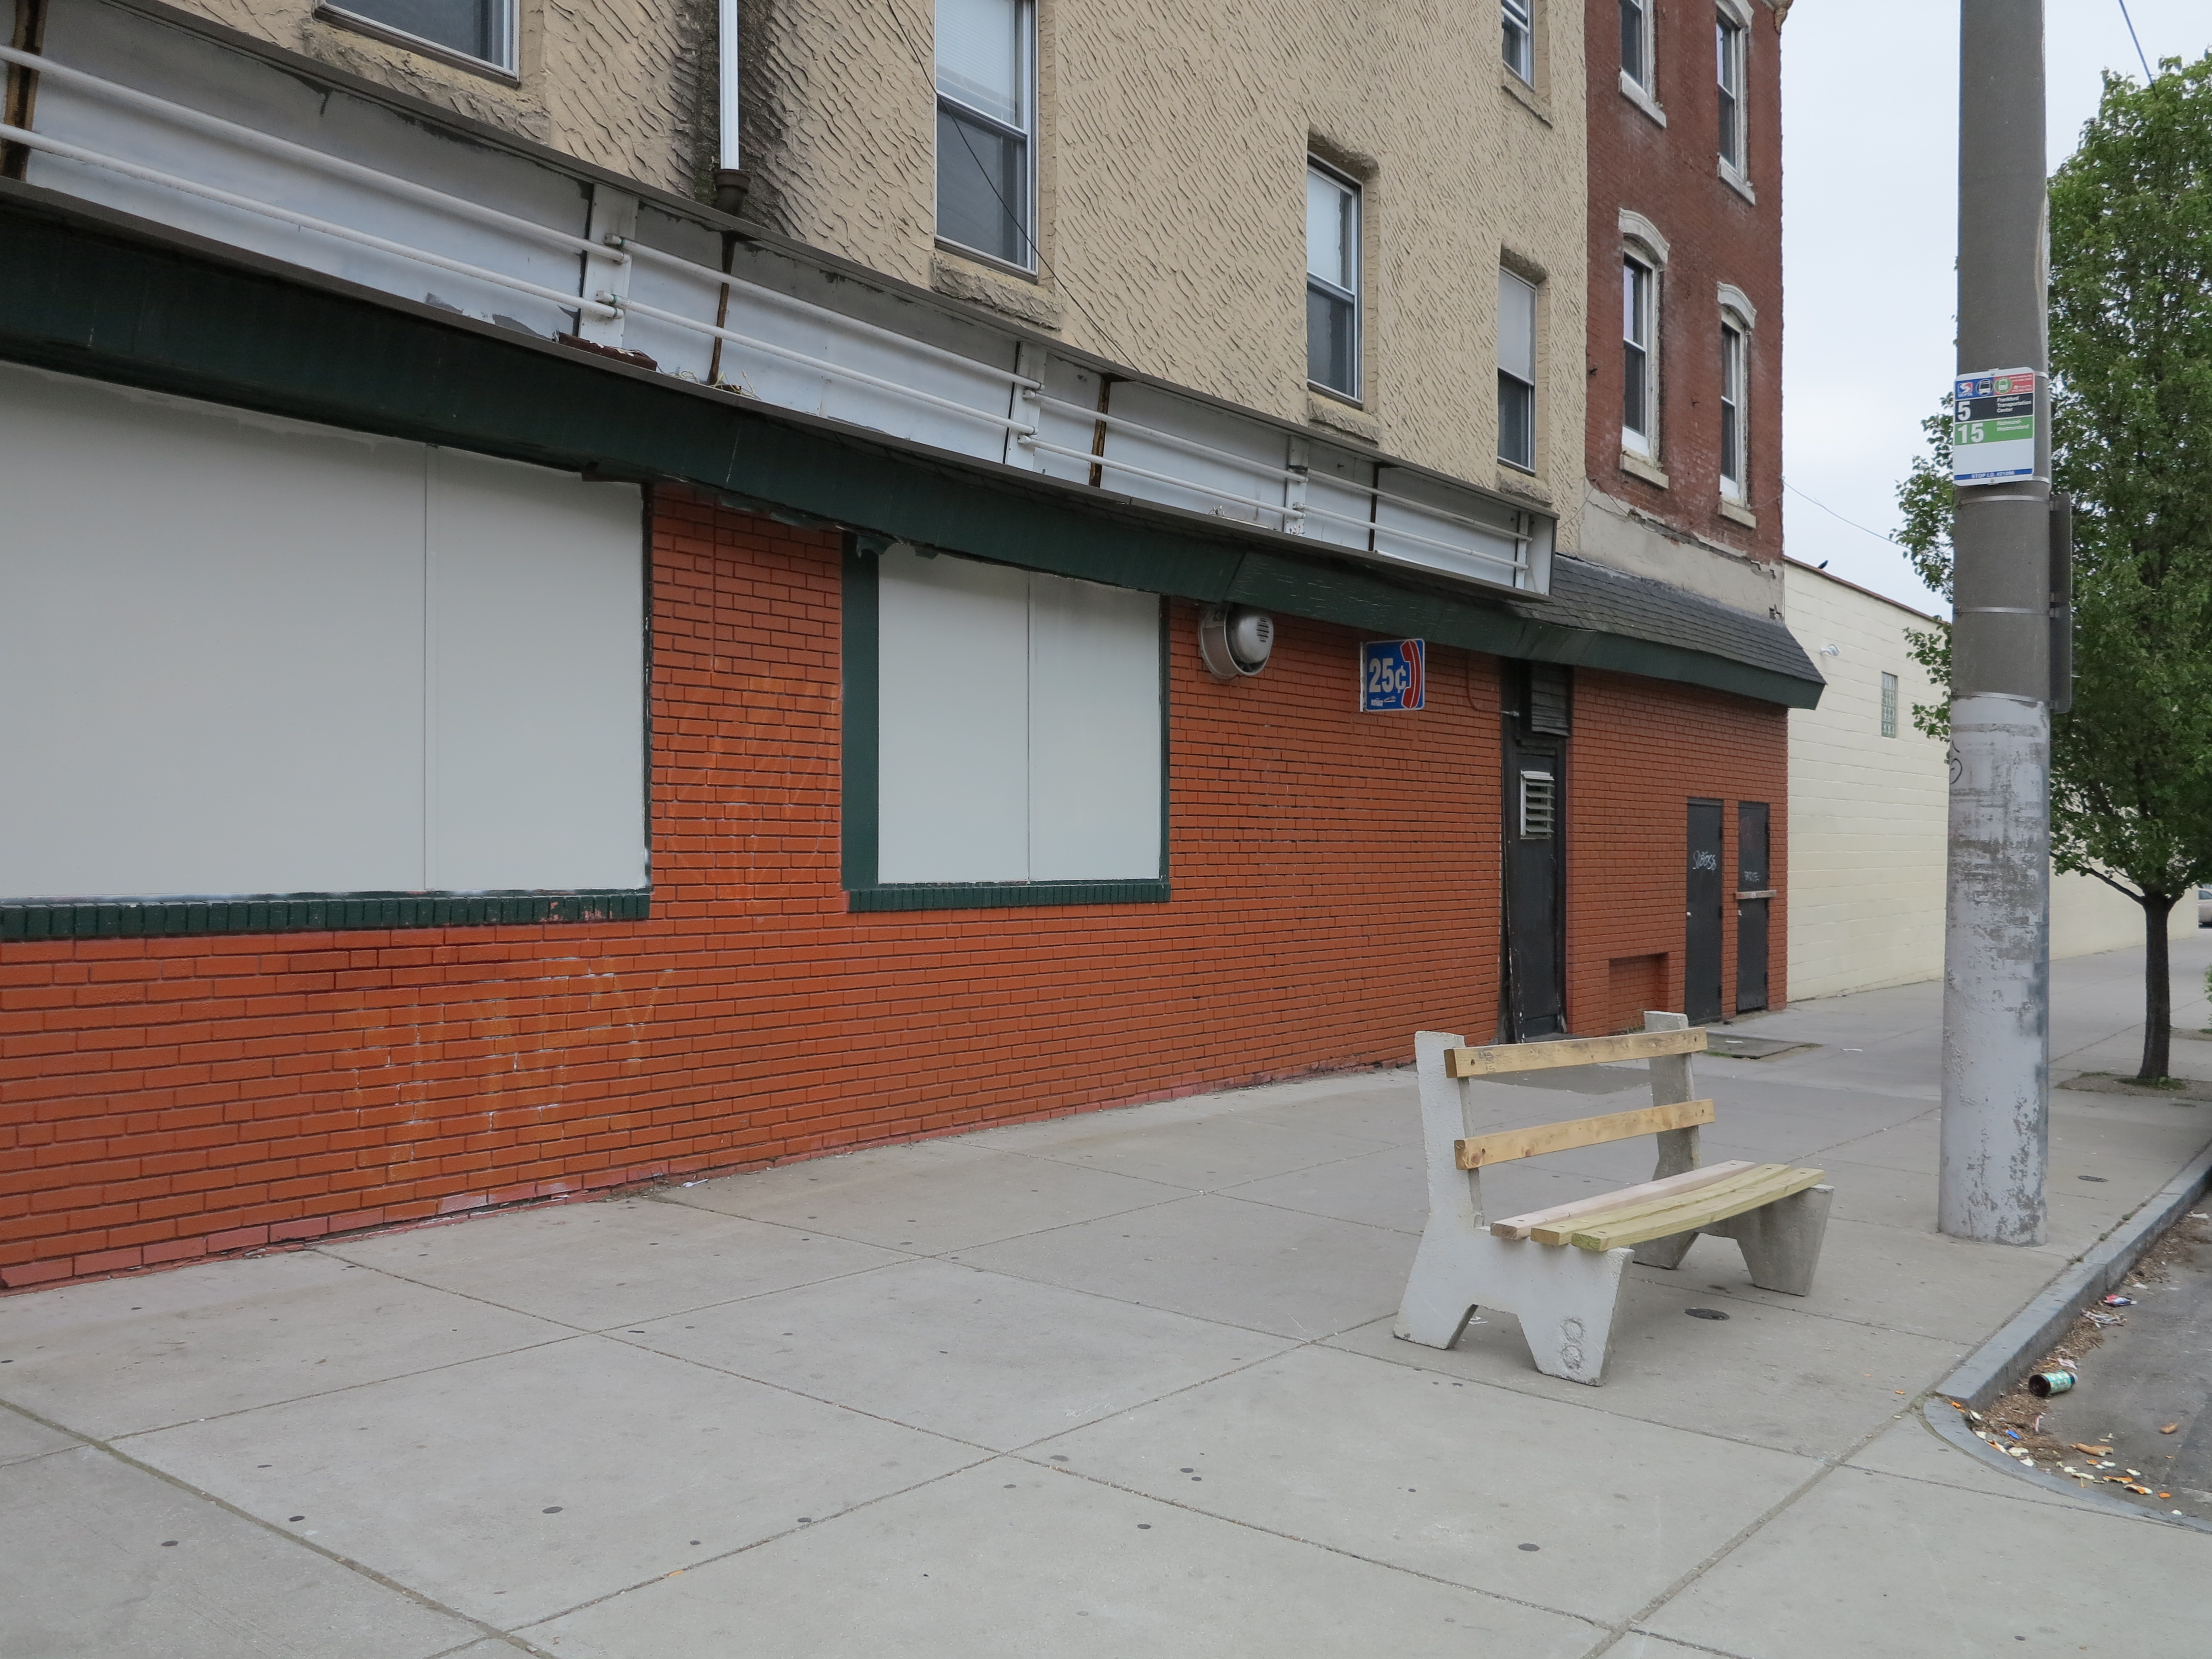 Bandit bench, stripped of its ad, at Girard Ave and 2nd Street, May 2013